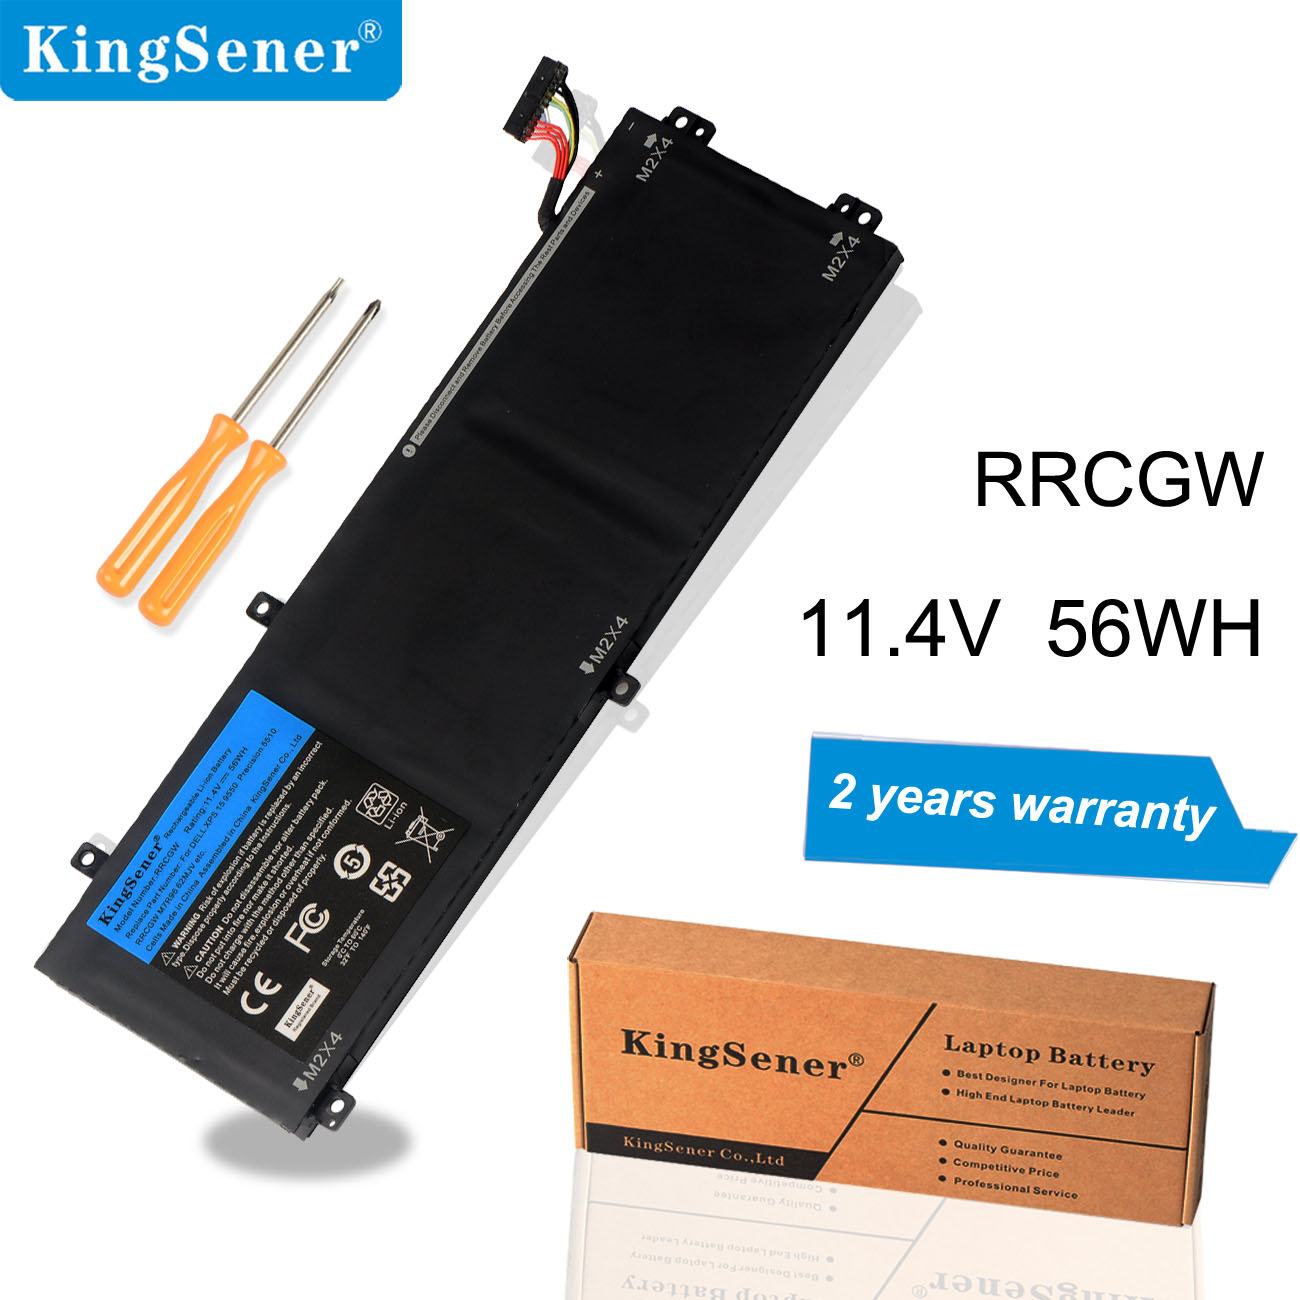 KingSener RRCGW New Laptop Battery For Dell XPS 15 9550 Precision 5510 Series M7R96 62MJV 11.4V 56WH Free 2 Years Warranty image